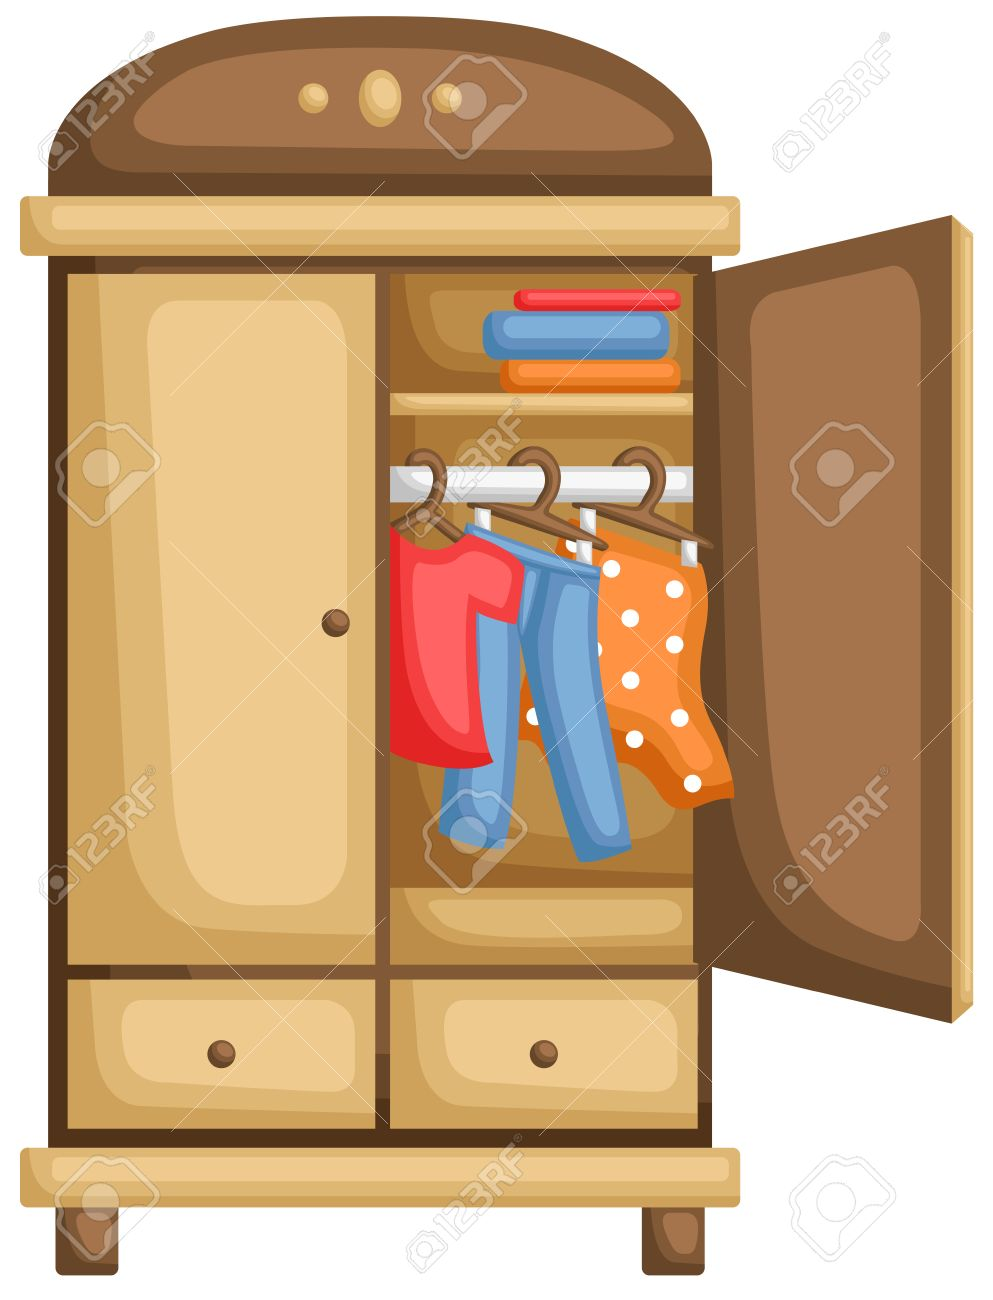 Wardrobe clipart  Wardrobe For Clothes Royalty Free Cliparts, Vectors, And Stock ...